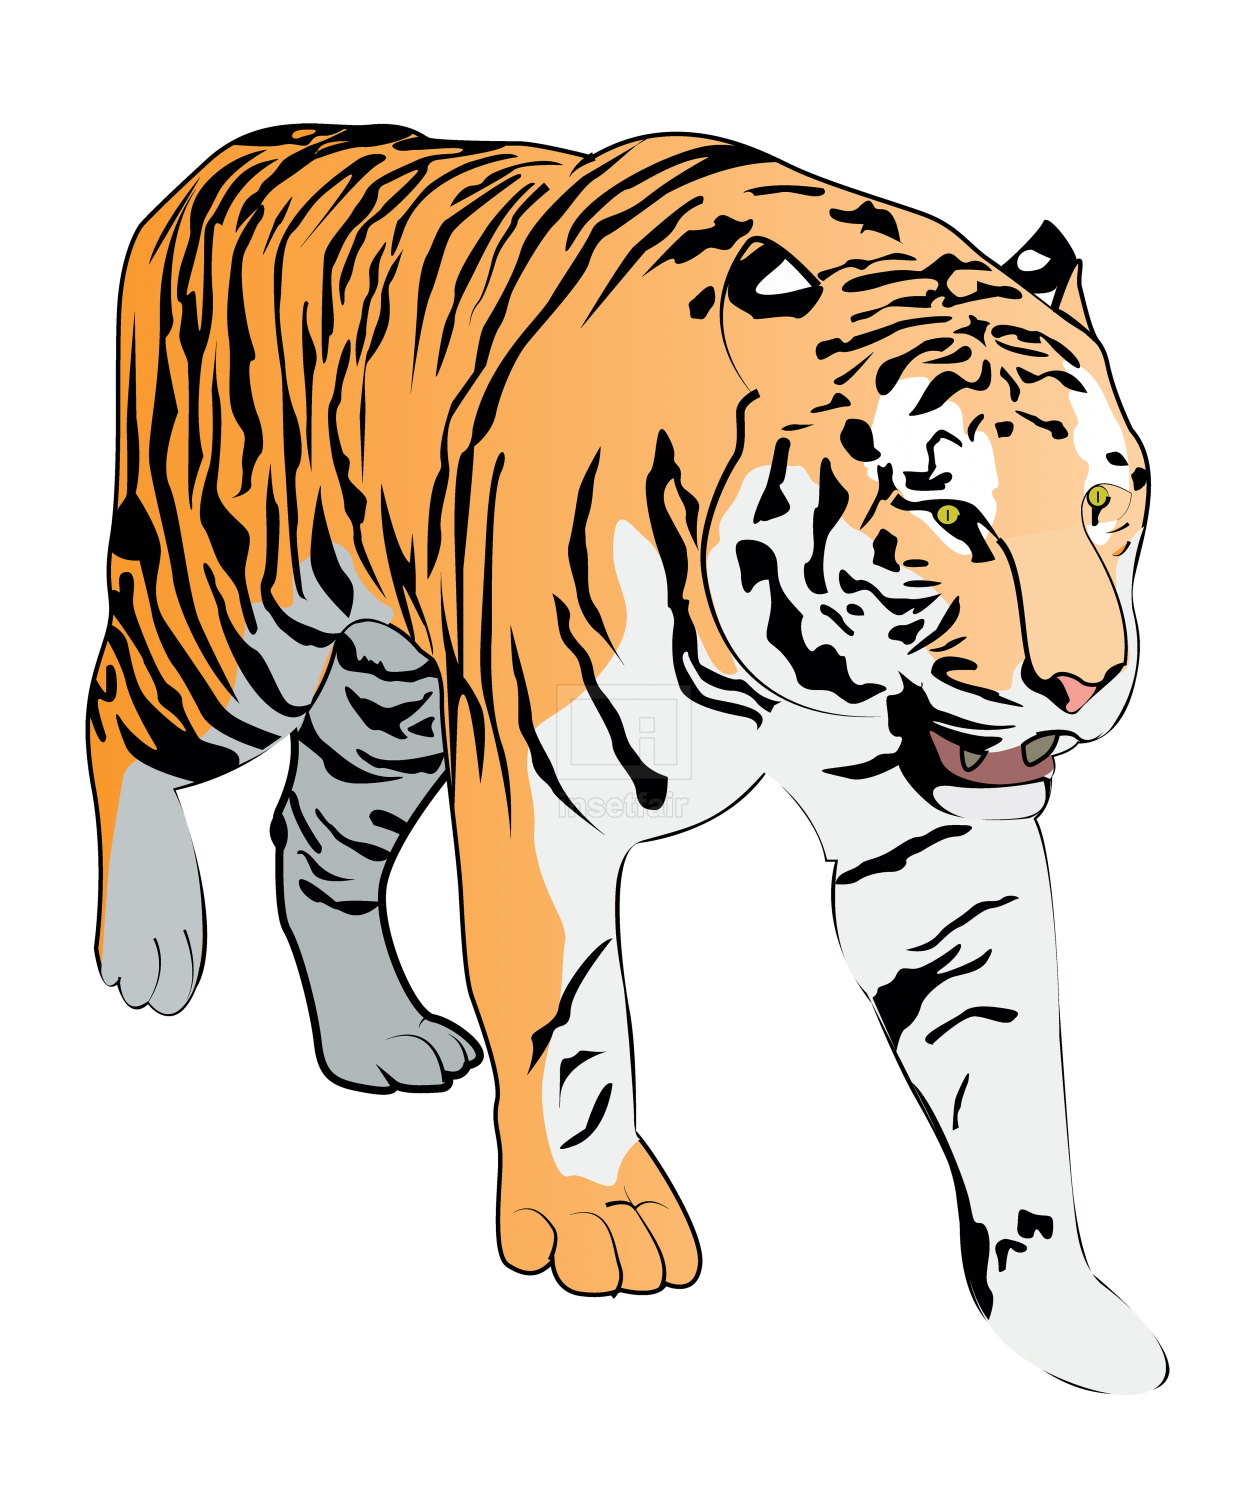 Mature tiger gentle walk with Adobe illustrator free for commercial use